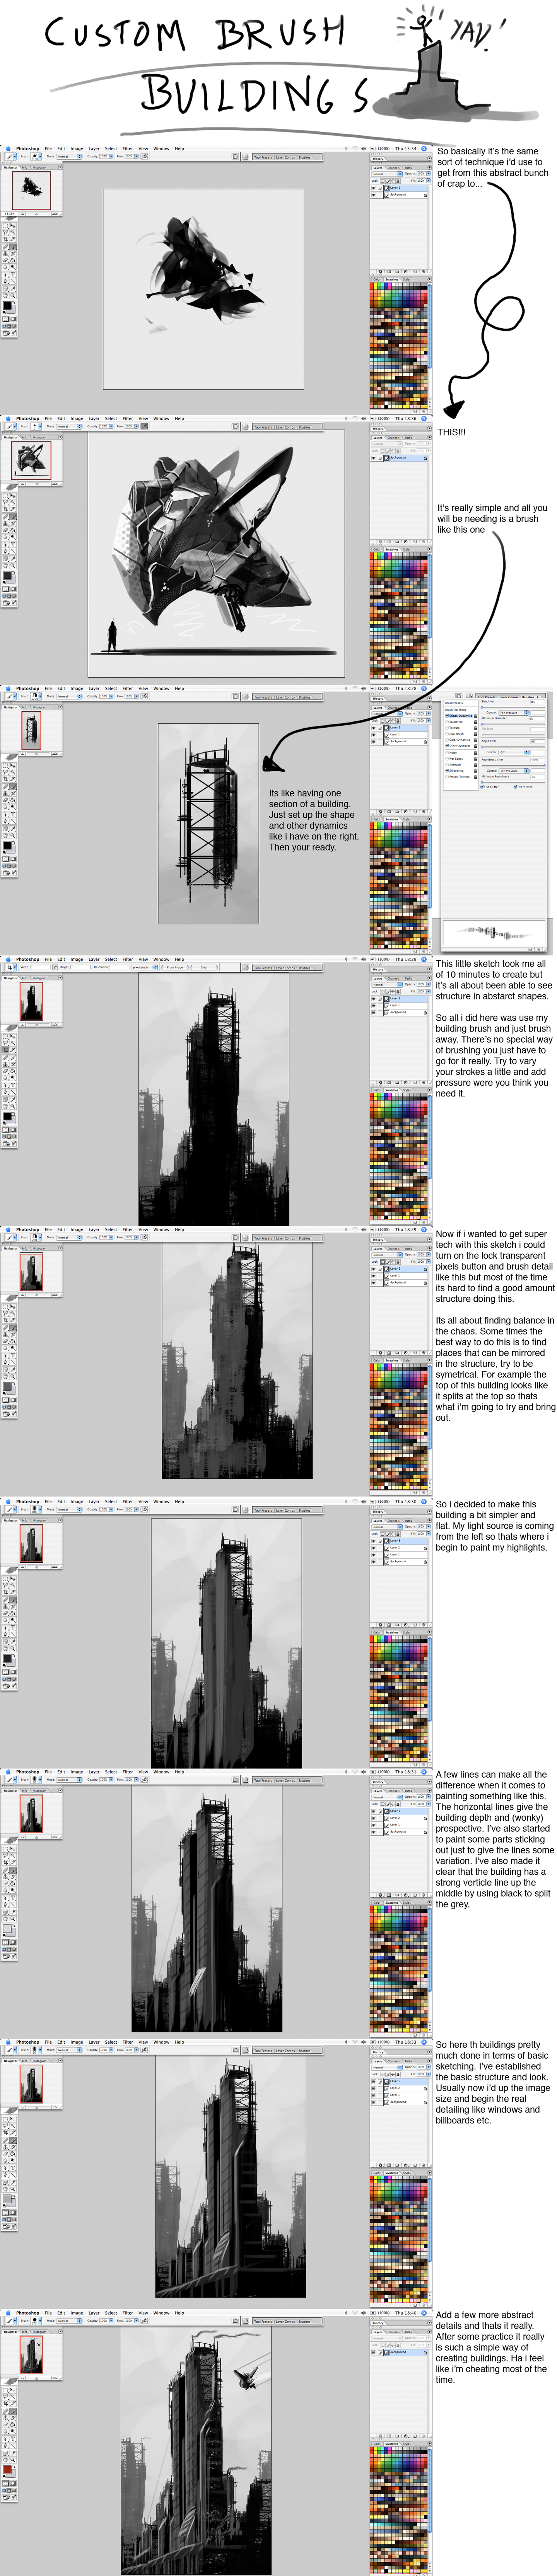 Building tutorial by david holland on deviantart building tutorial by david holland baditri Image collections